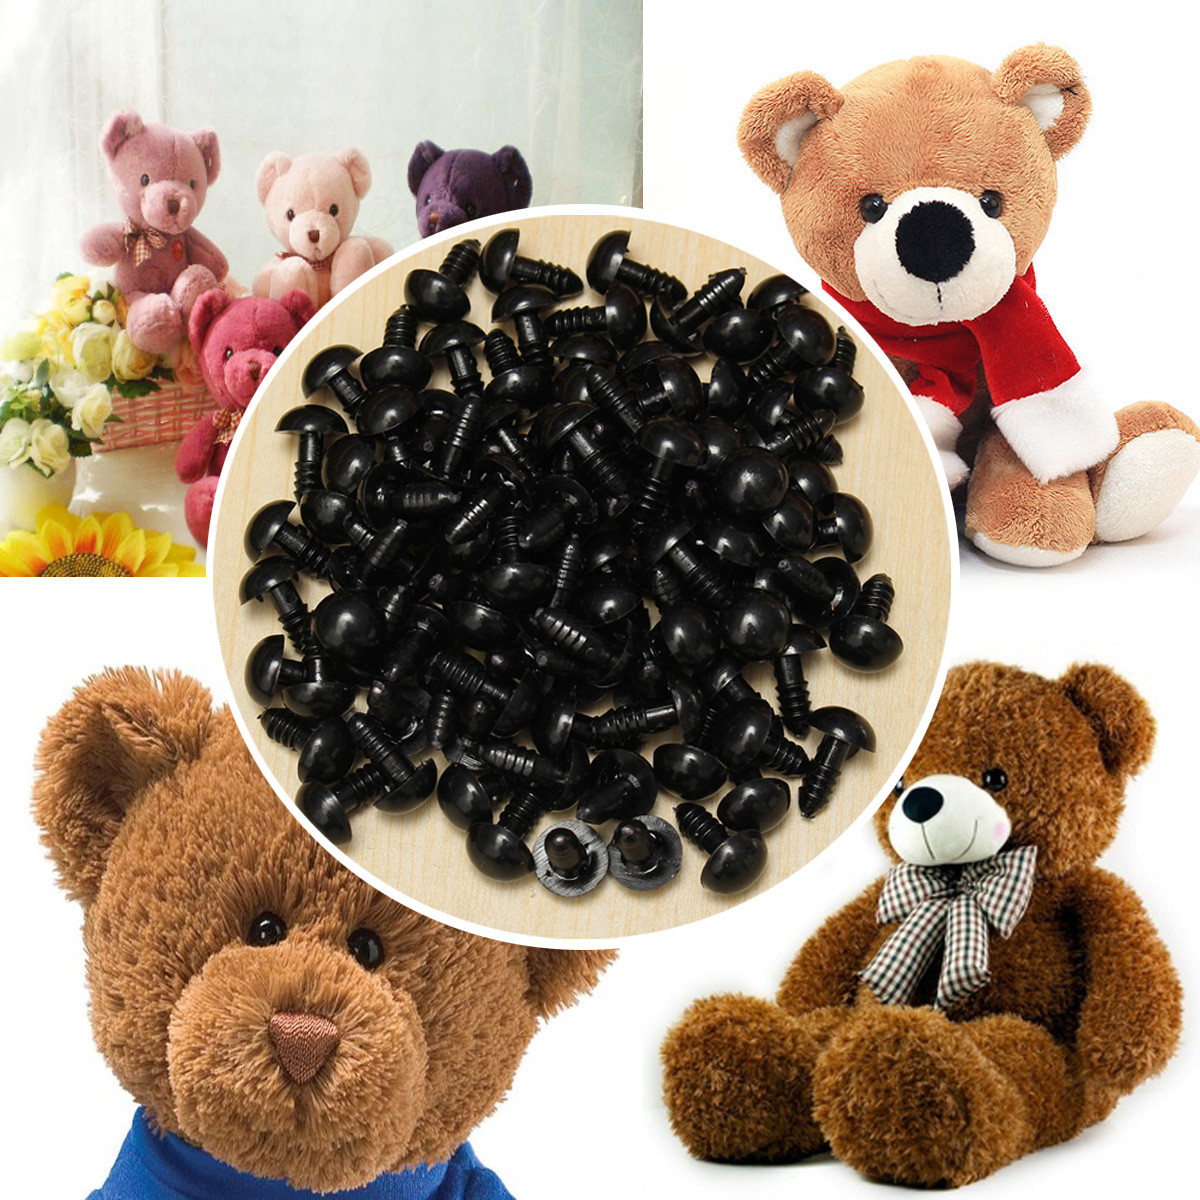 100Pcs/Bag DIY Doll Toy Eyes 12mm Black Plastic Safety Eyes Puppets Doll Crafts Doll Eyes Handmade Accessories with Washers 100set box 10mm 12mm plastic craft toy doll eyes safety eyes handmade accessories children diy creative toys dolls accessories